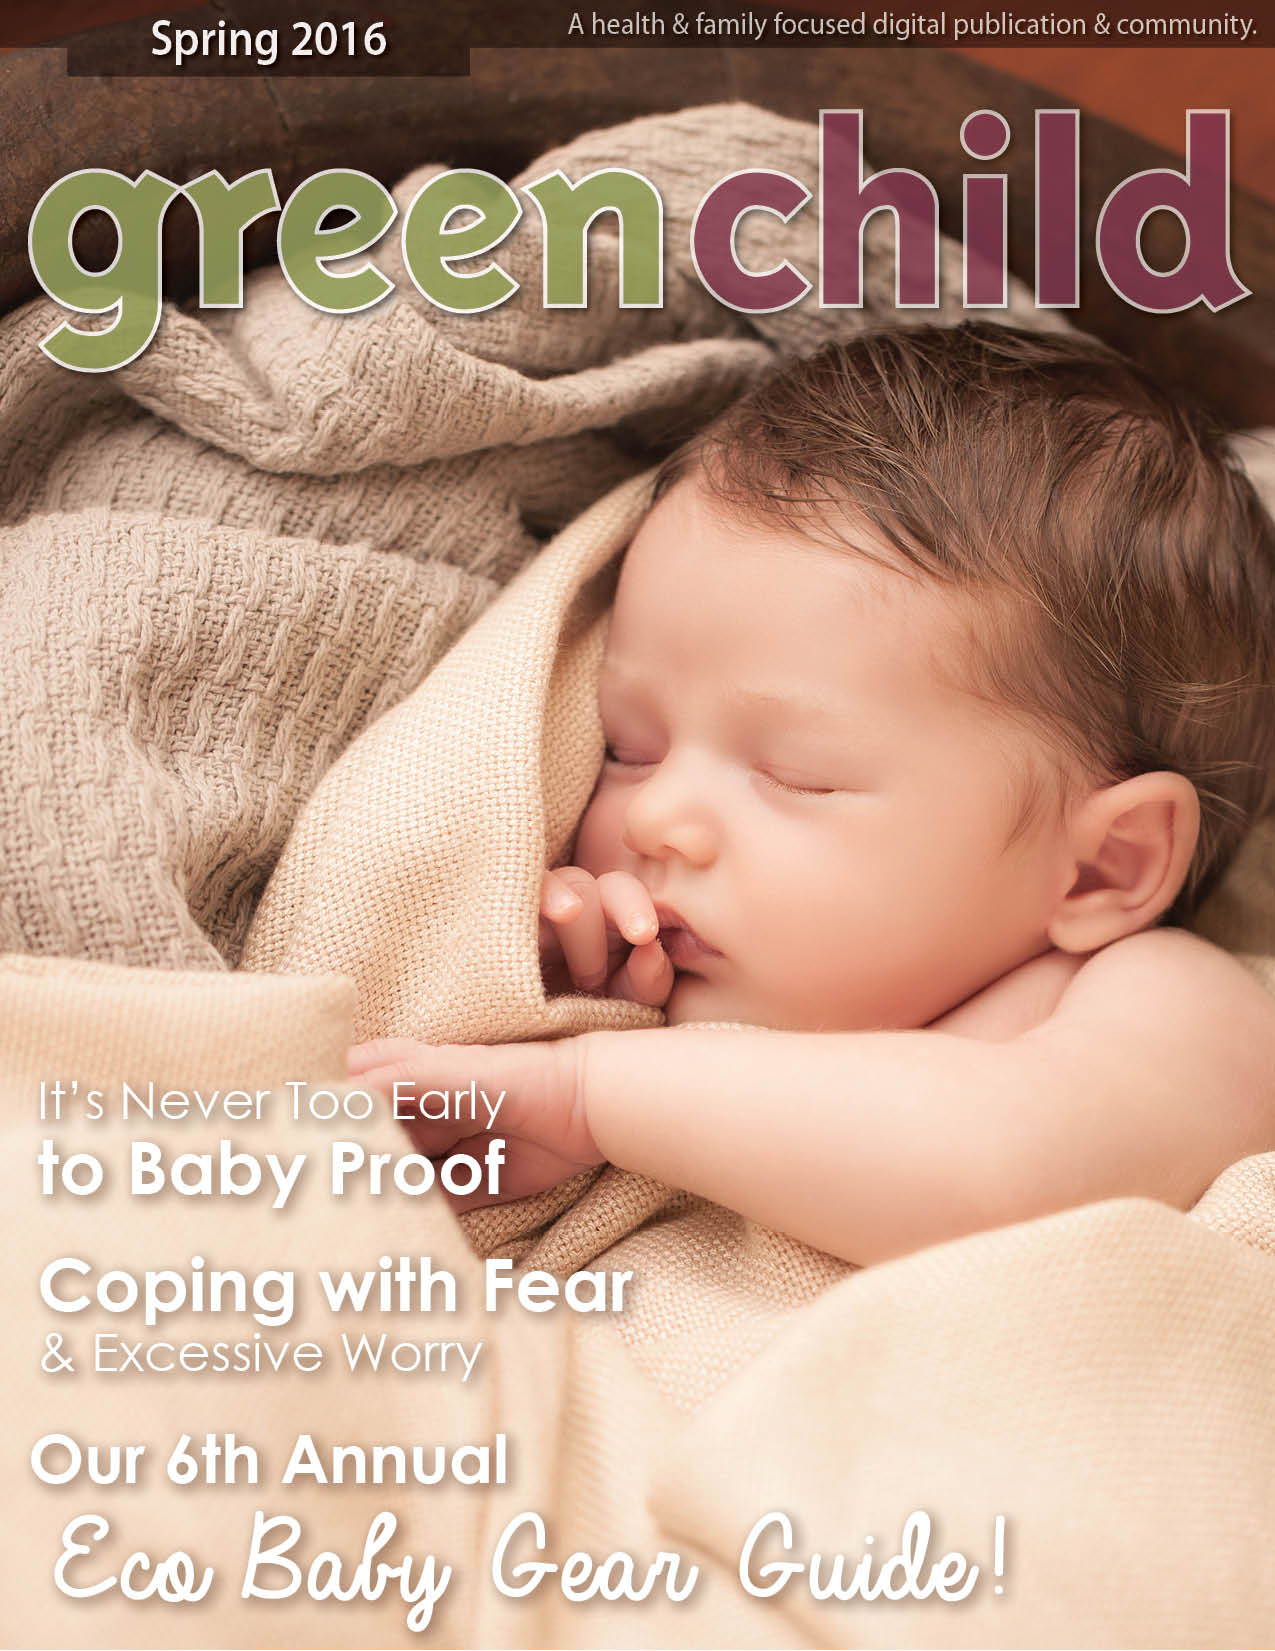 Spring Baby Gear Guide 2016 Cover